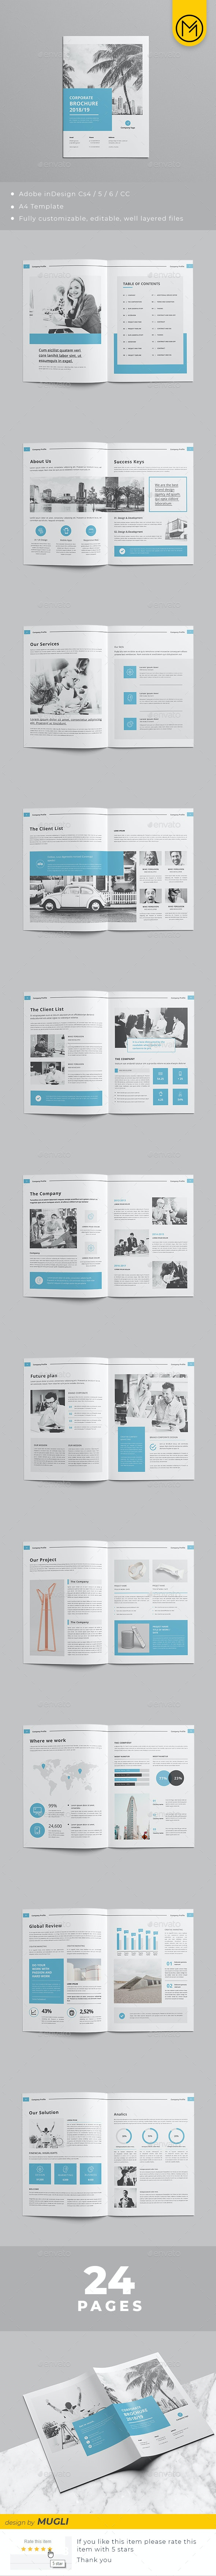 Company Profile v3 - Corporate Brochures